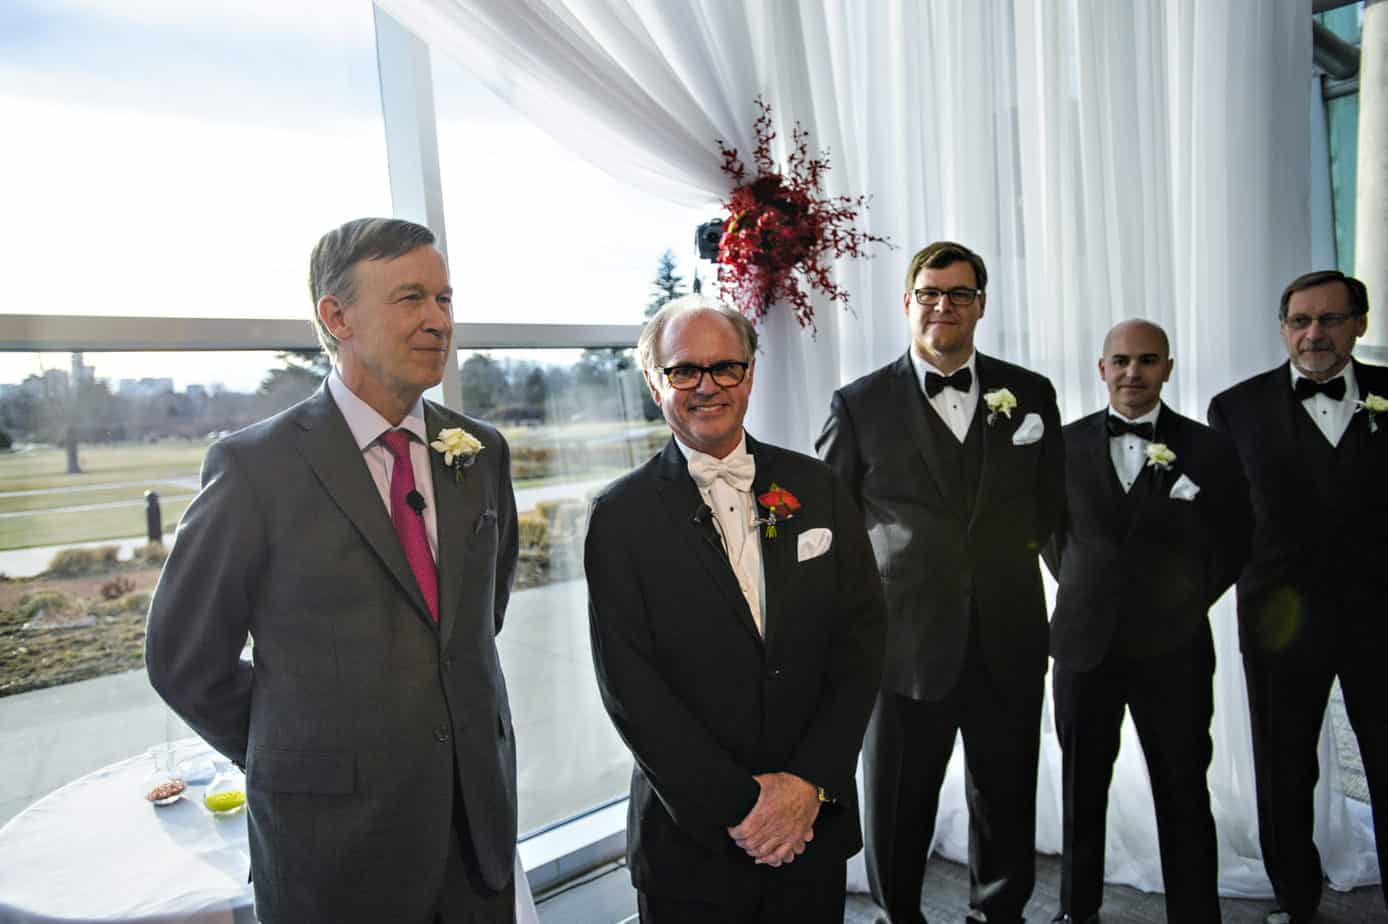 museum of nature and science wedding ceremony